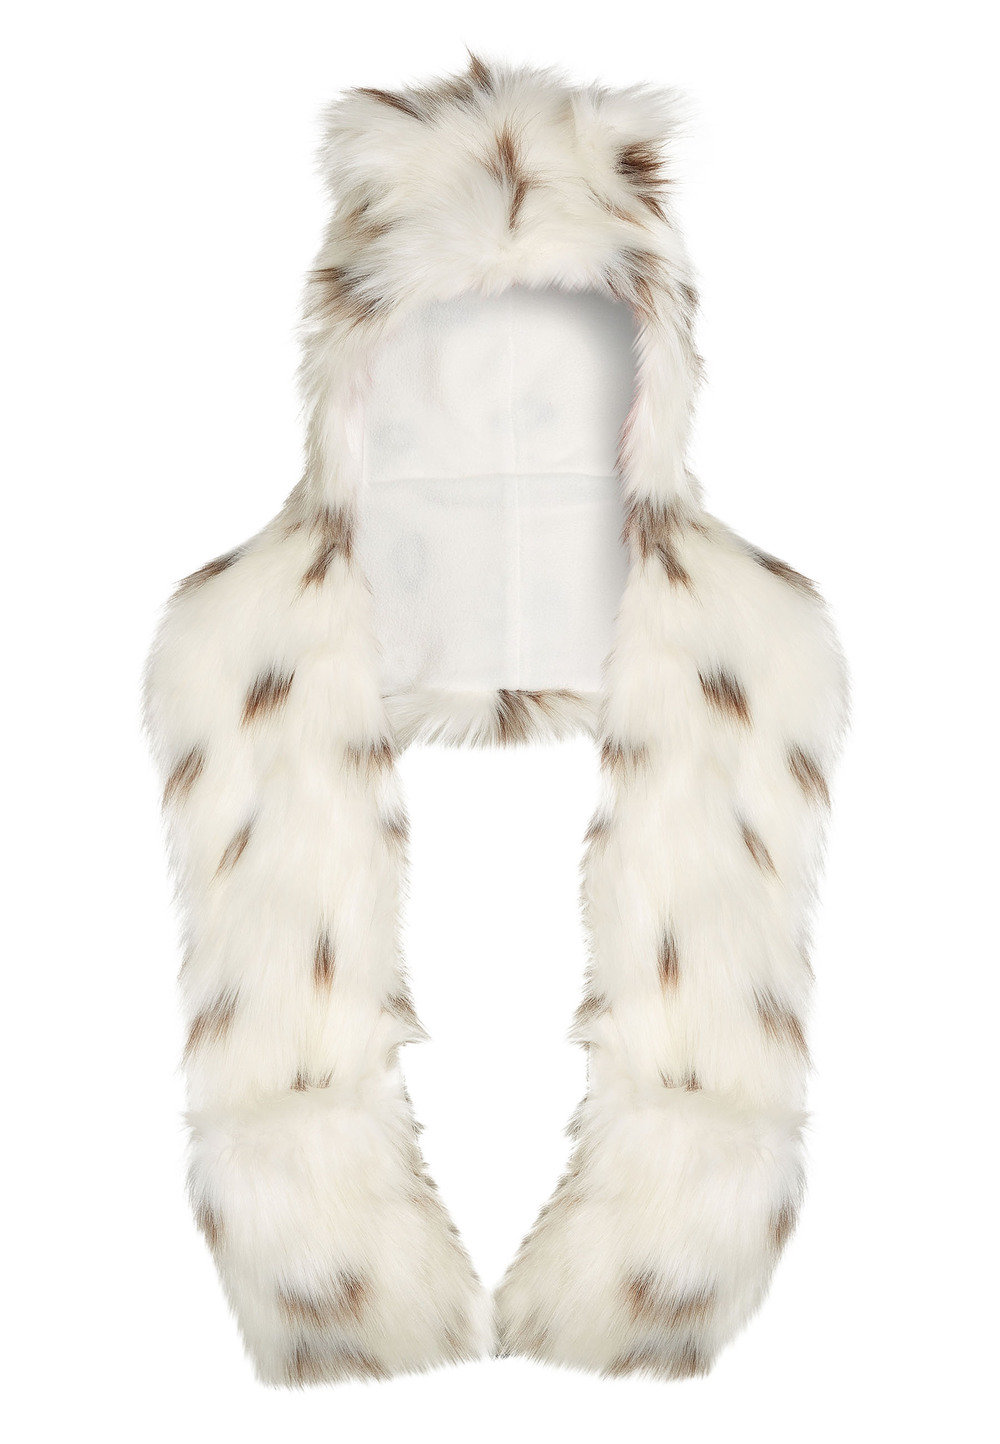 3ad3dbf6b11 ITEM ADDED TO BAG! Item description. Colour  Size  Qty  GO TO CHECKOUT  CONTINUE SHOPPING. Next Faux Fur Hat ...